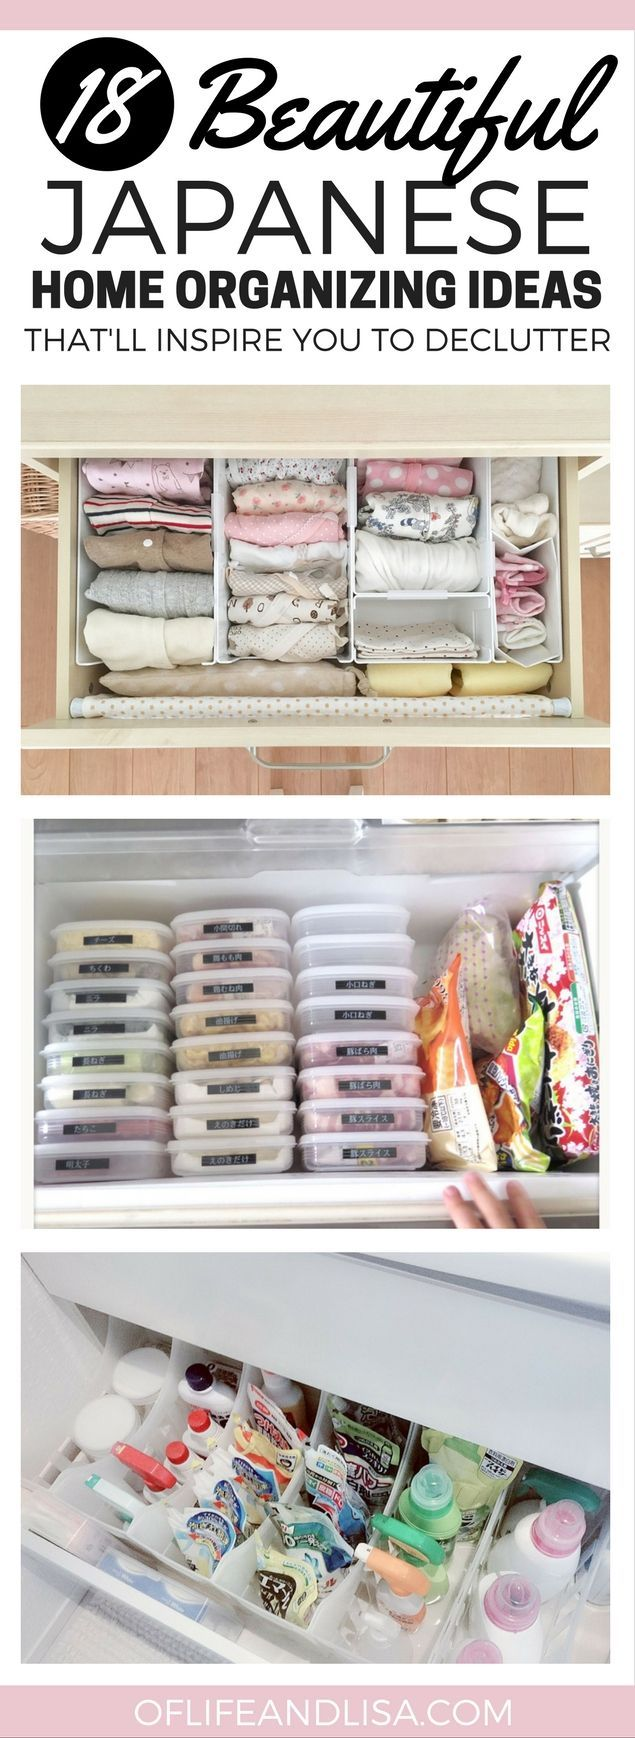 944 best Organization Solutions images on Pinterest | Organization ...